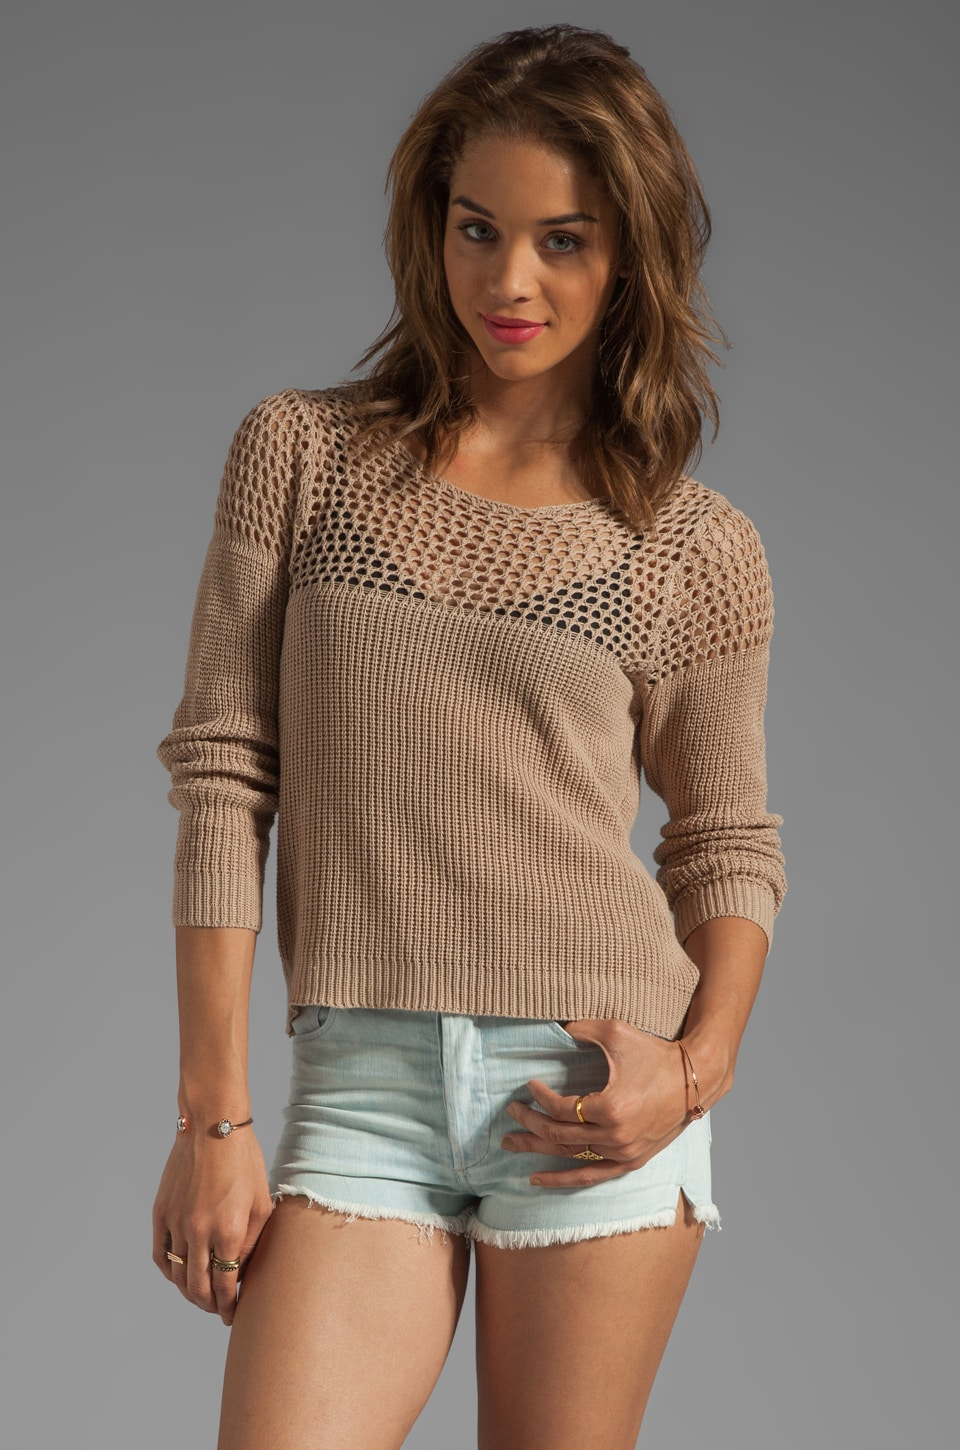 Obey Summer Breeze Sweater in Oatmeal